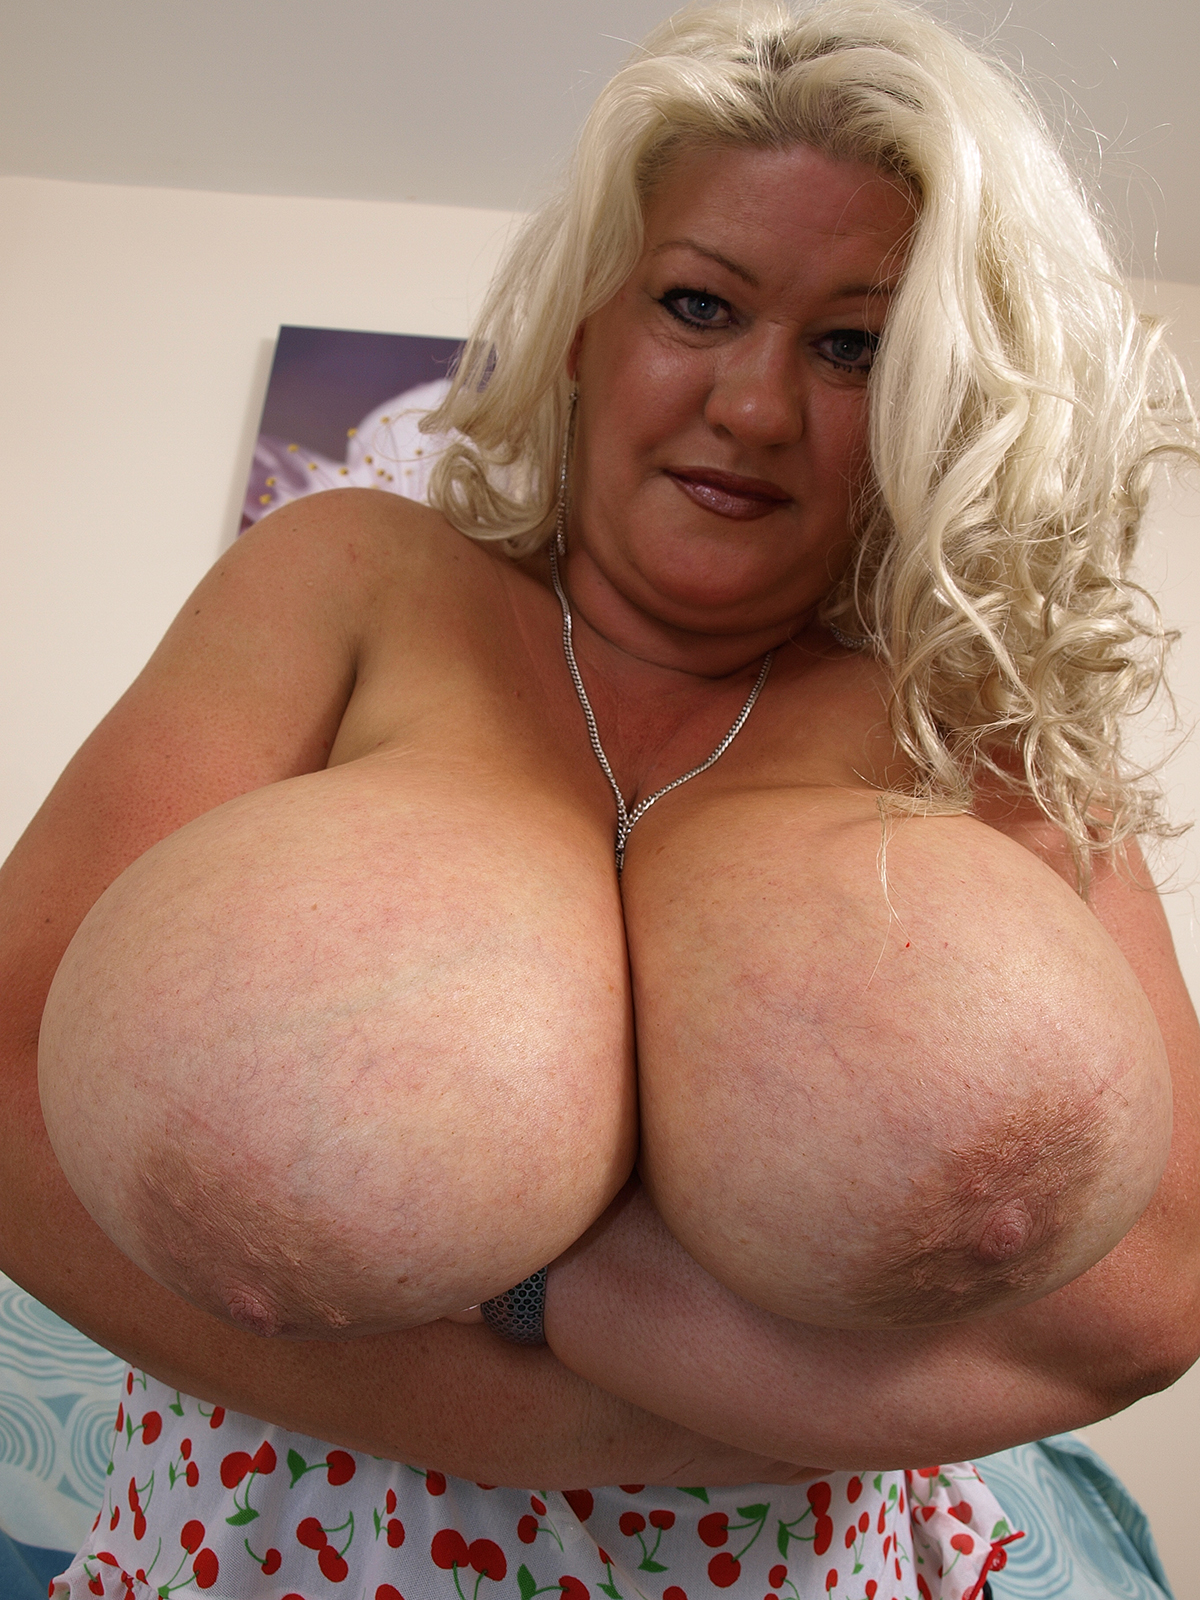 Escorts bbw sites